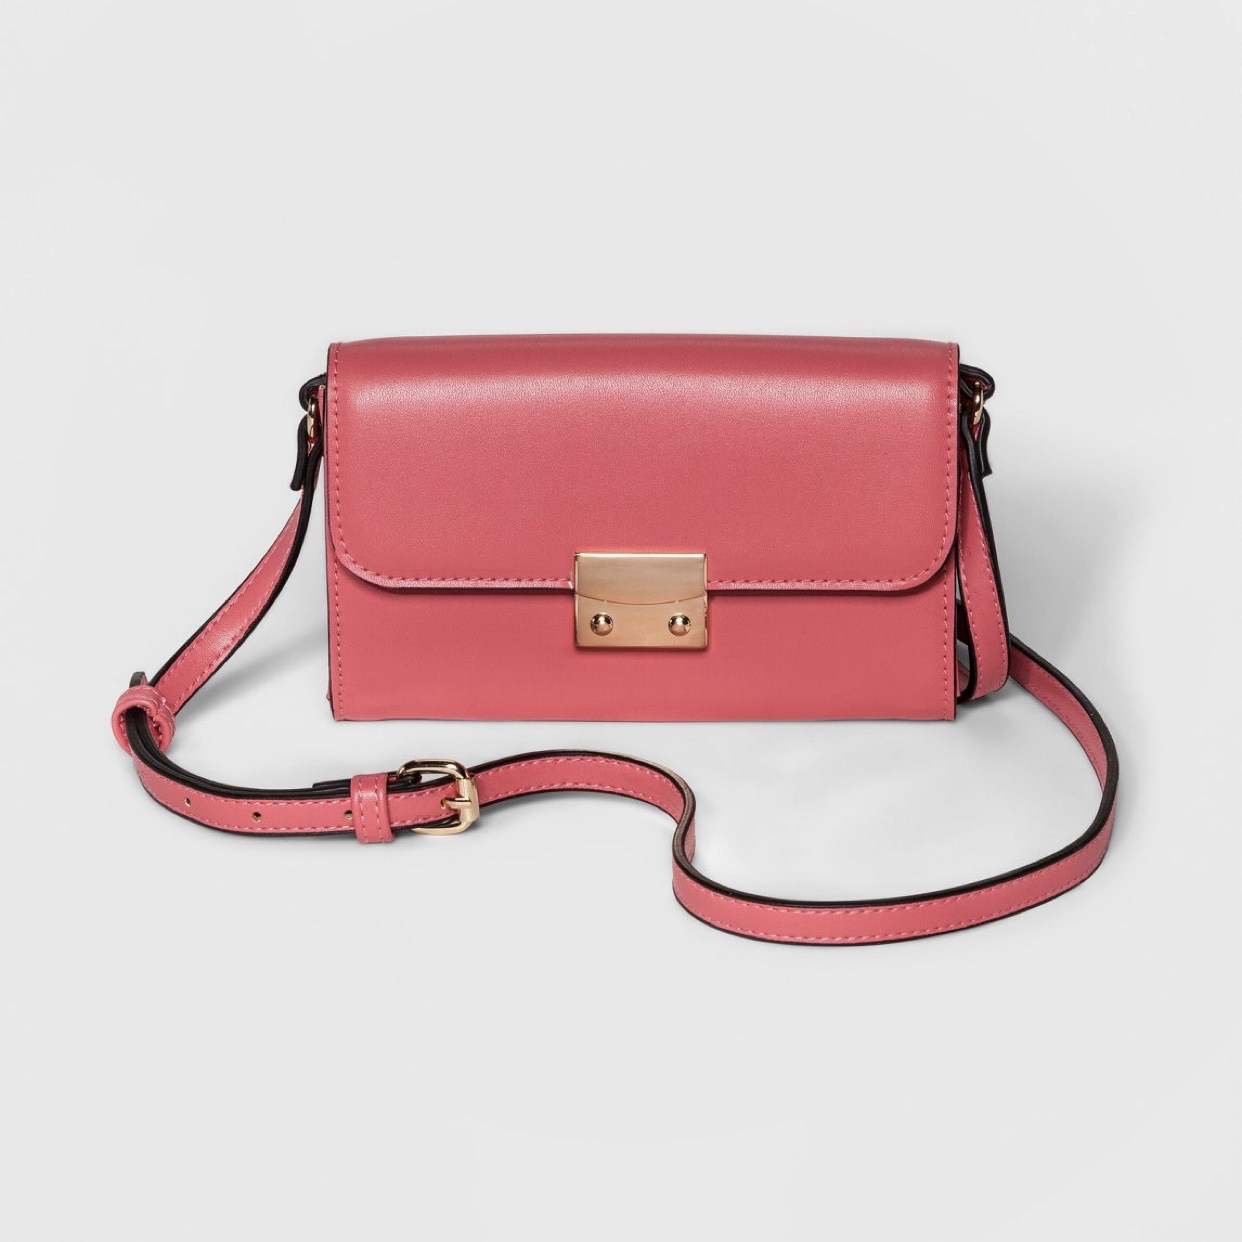 Target A New Day Pink Peppercorn Clutch